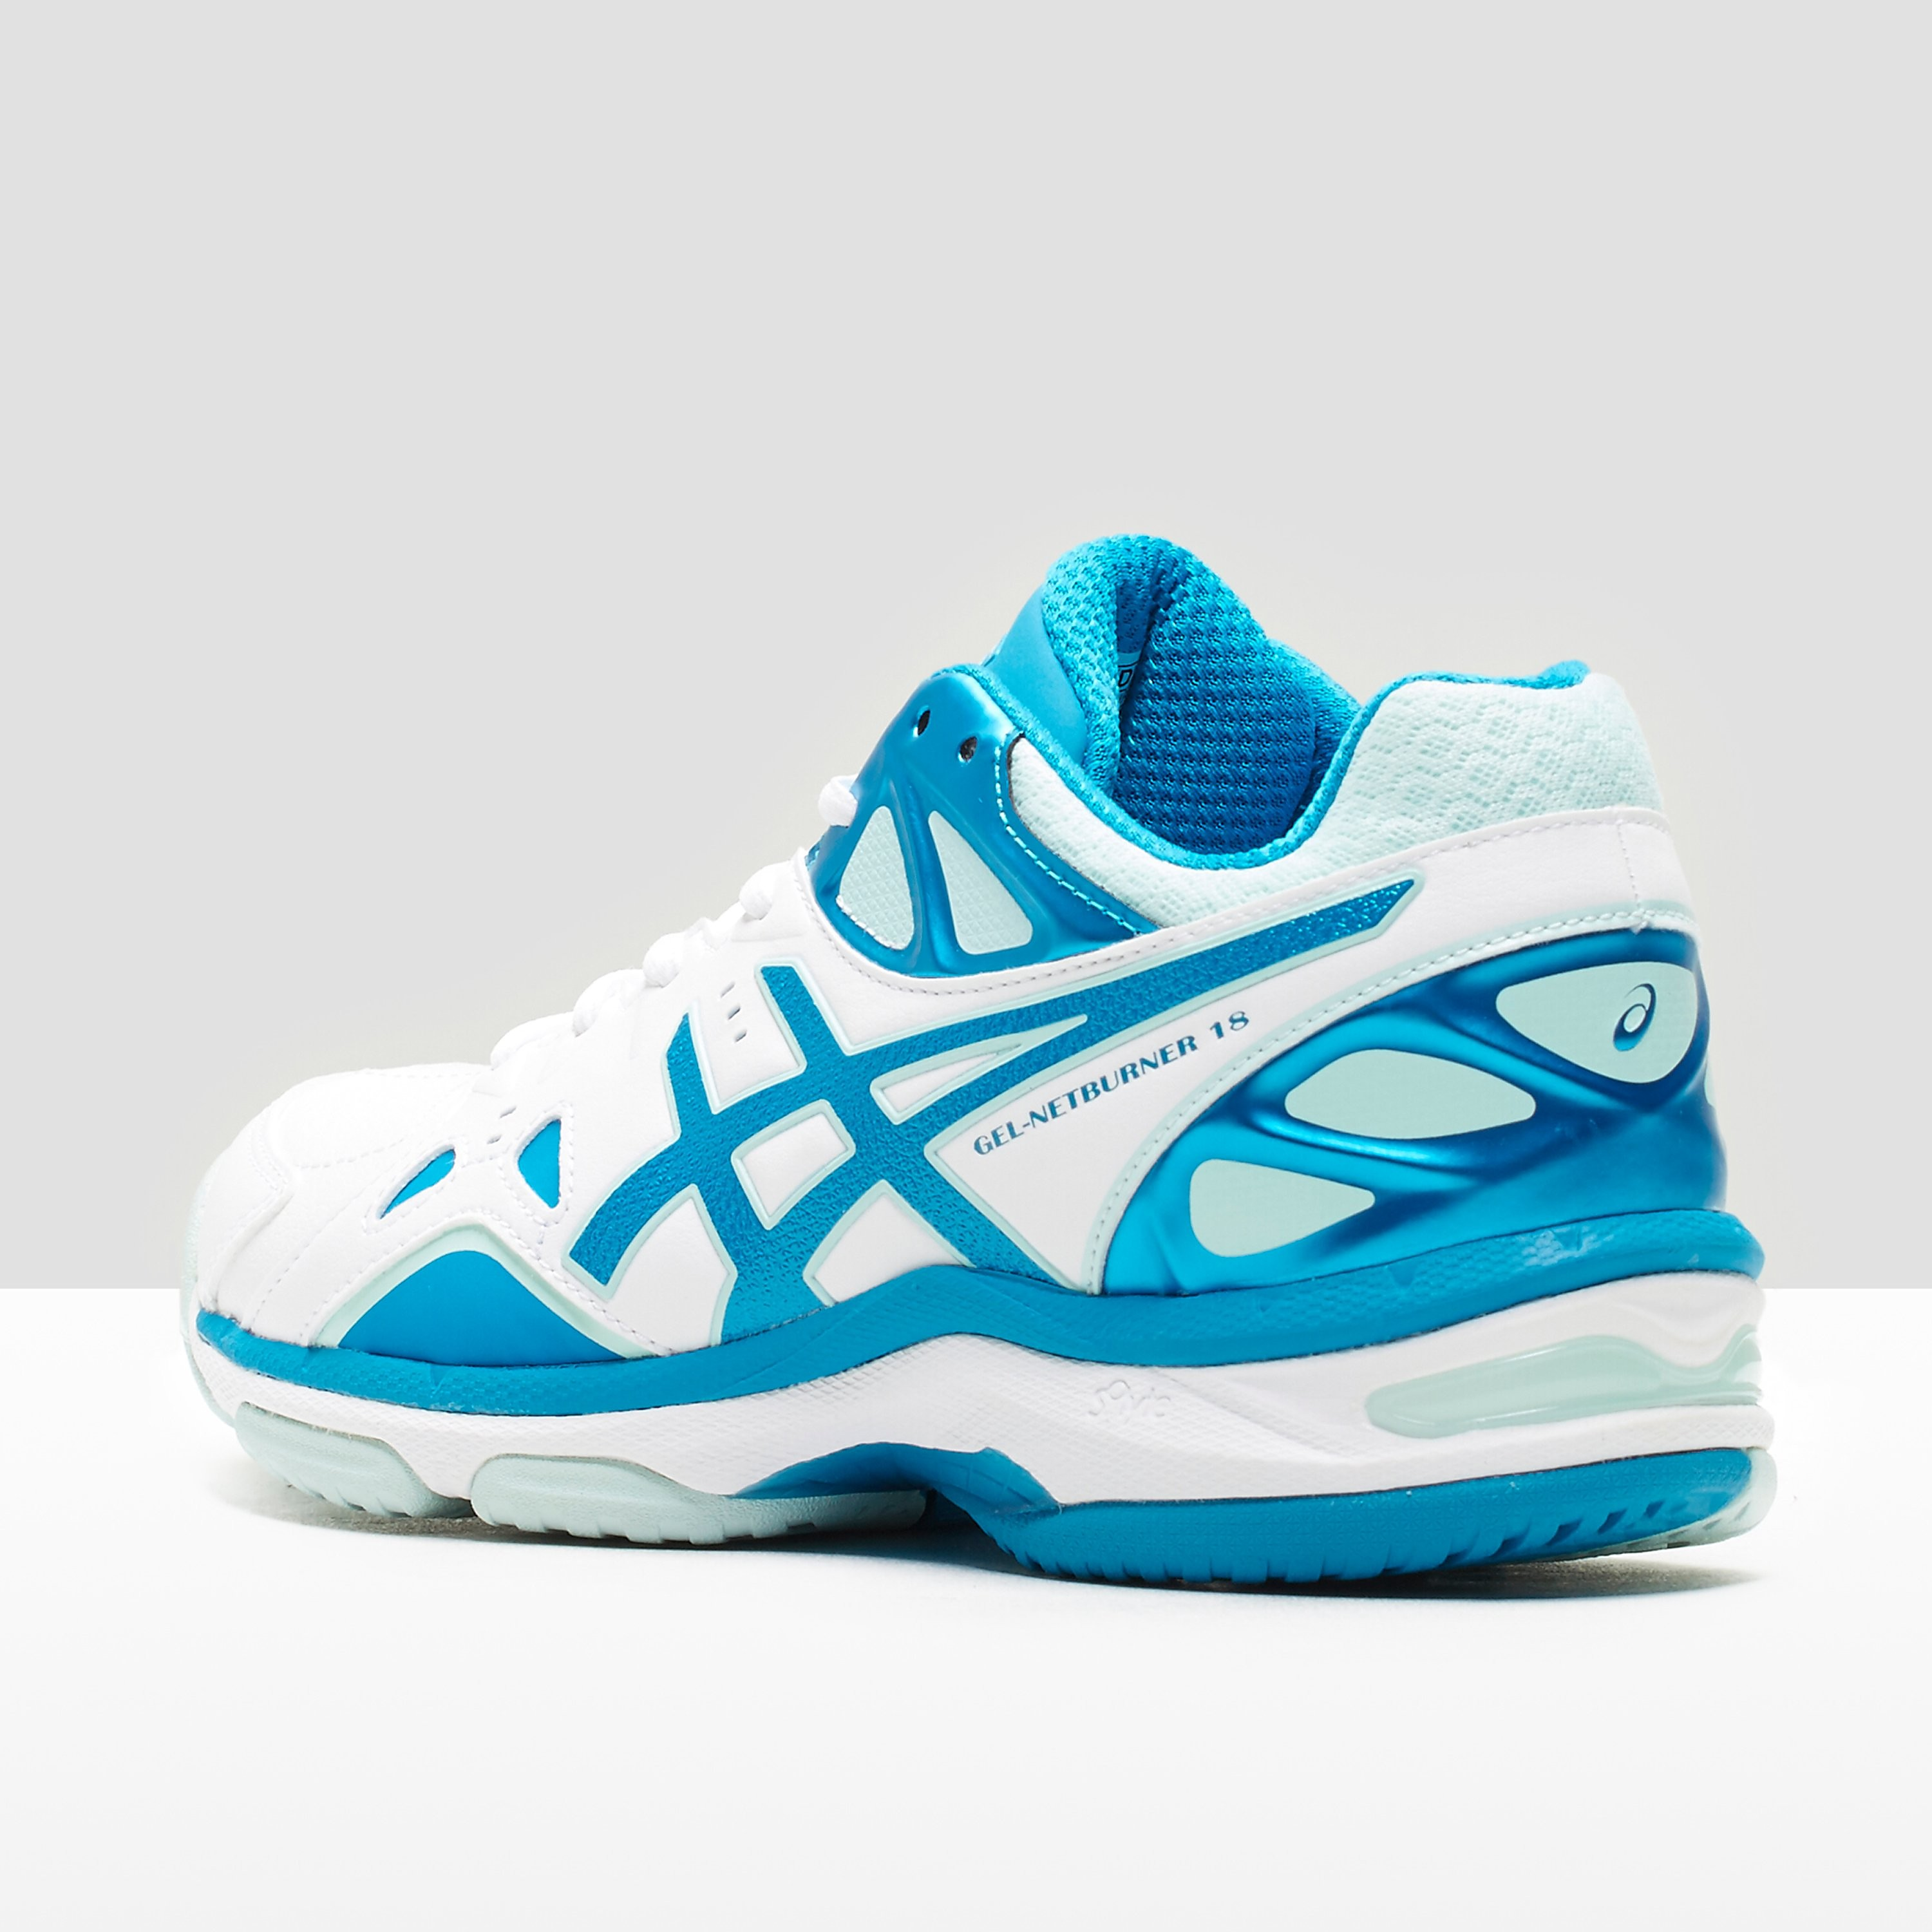 ASICS GEL-NETBURNER 18 (D) Ladies Netball Shoes